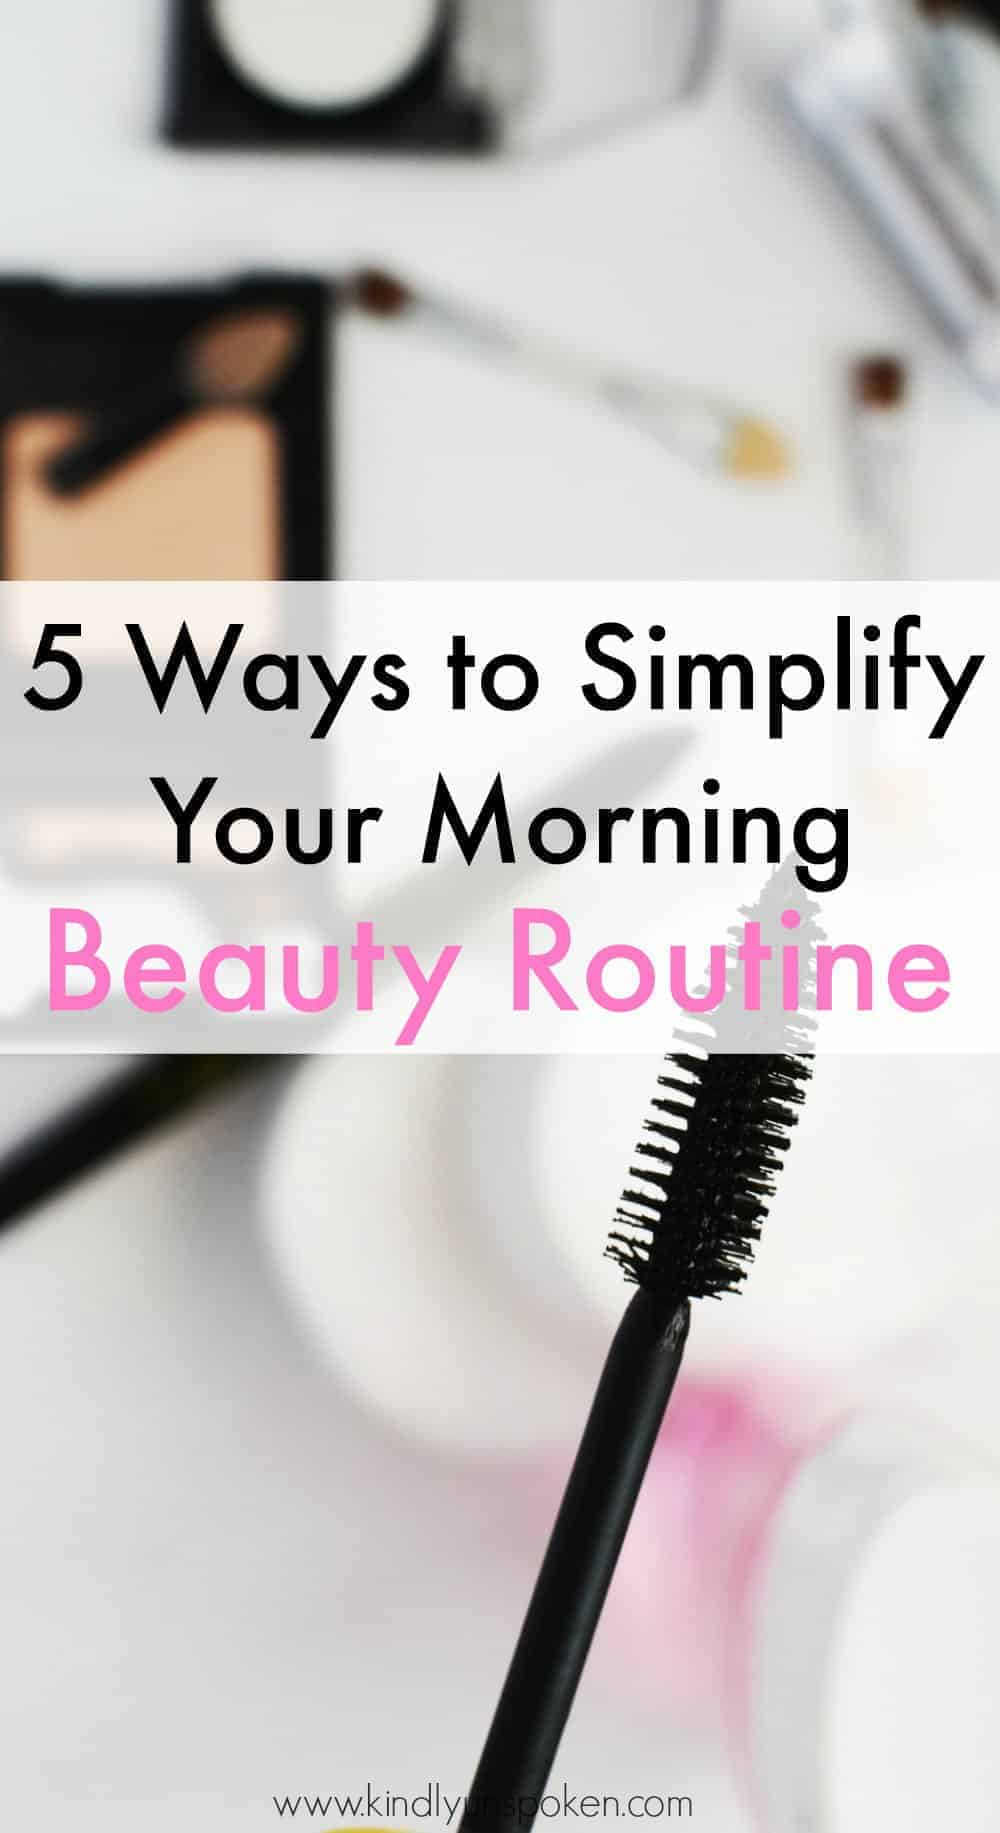 Do you struggle to get ready in time in the mornings? Then check out my 5 Ways to Simplify Your Morning Beauty Routine, which will help you speed up your daily beauty routine and will help prevent you from being late! #morningbeautyroutine #beautyhabits #beautytips #simplebeauty #easybeauty